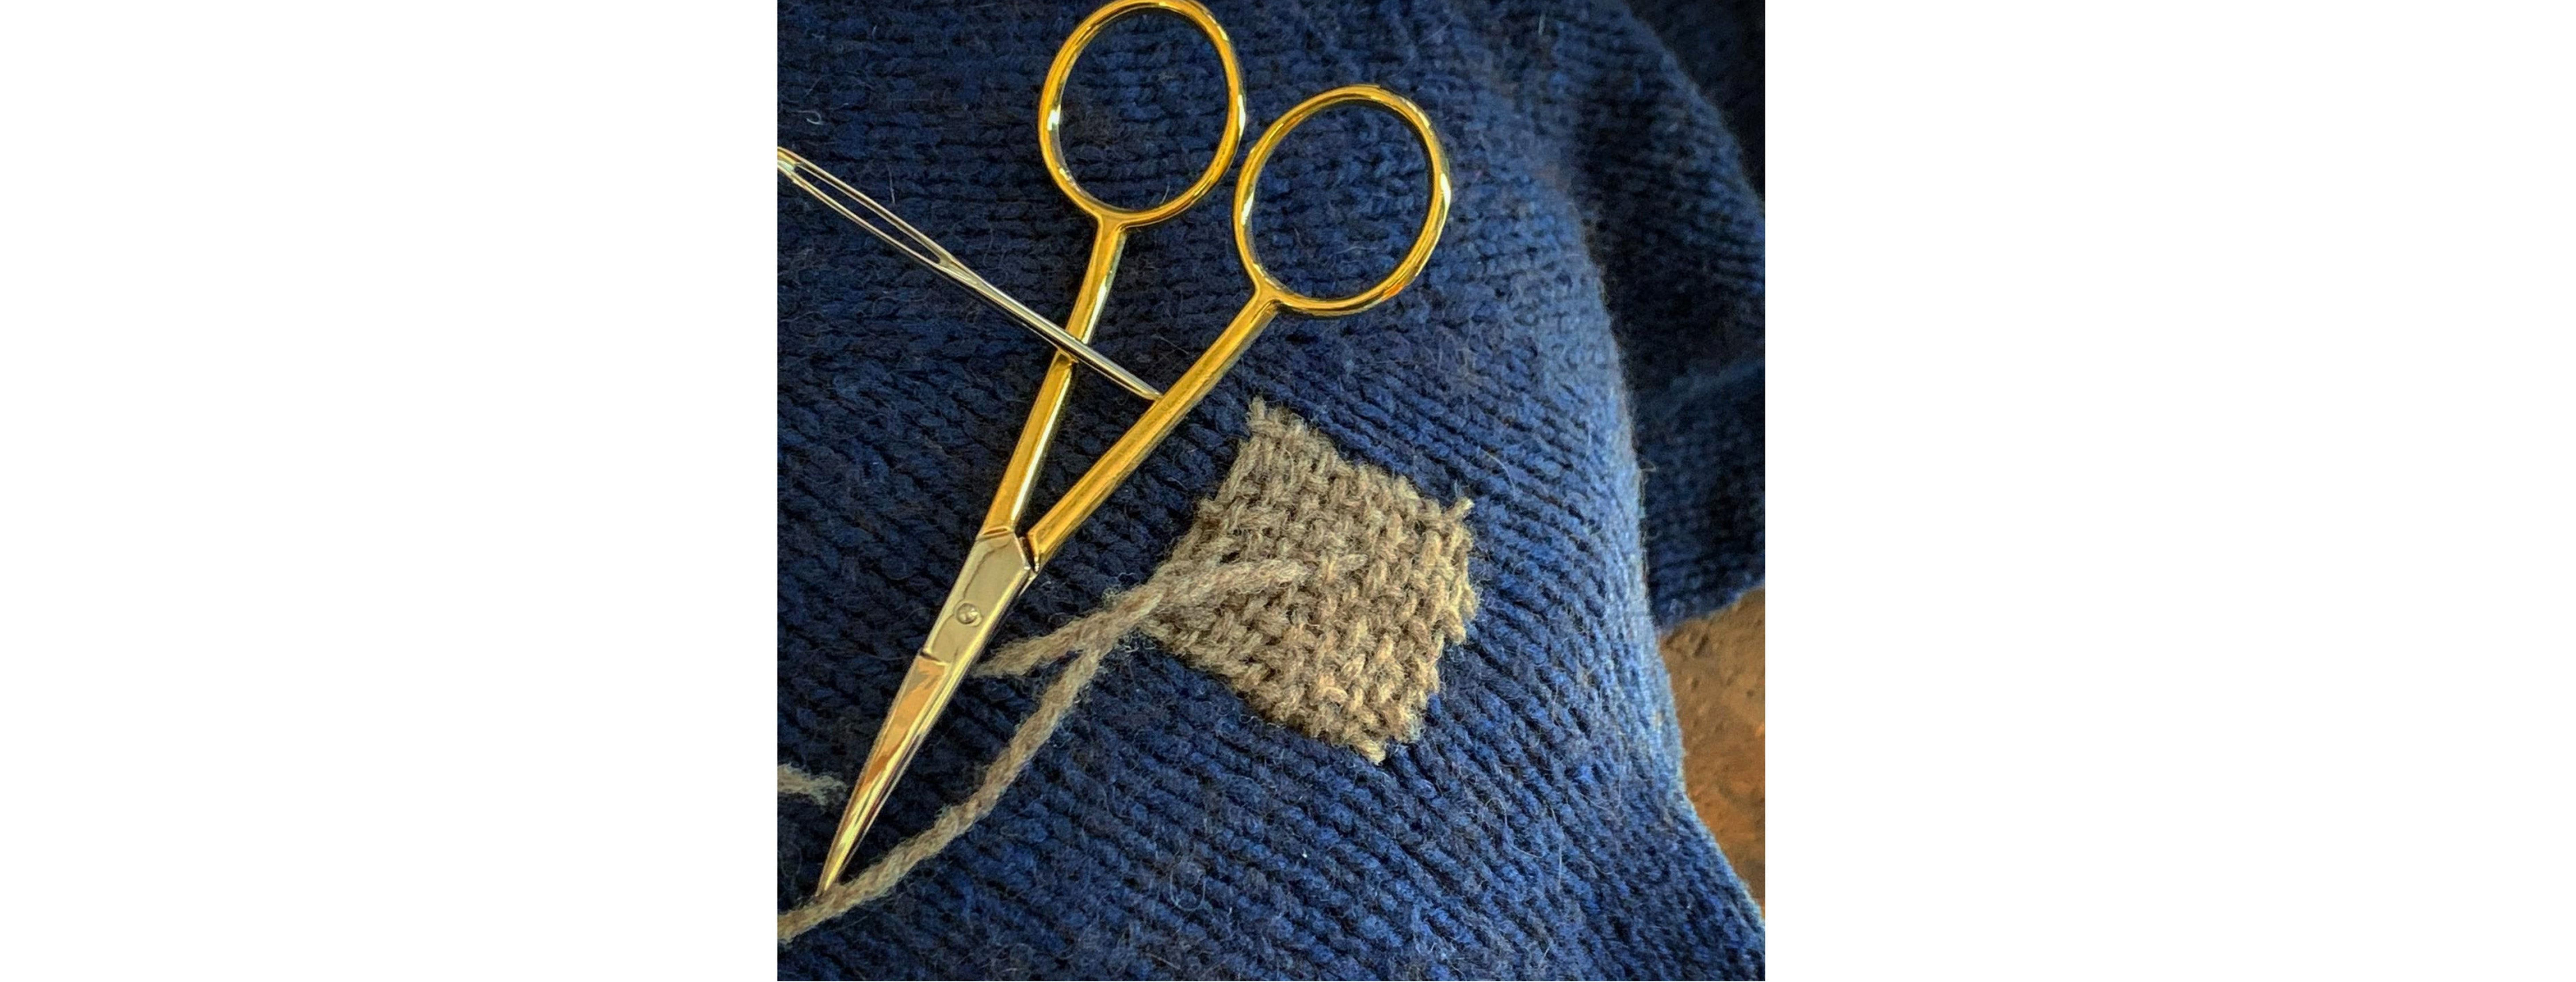 Before finishing, push the needle in the threads toward the already woven patch